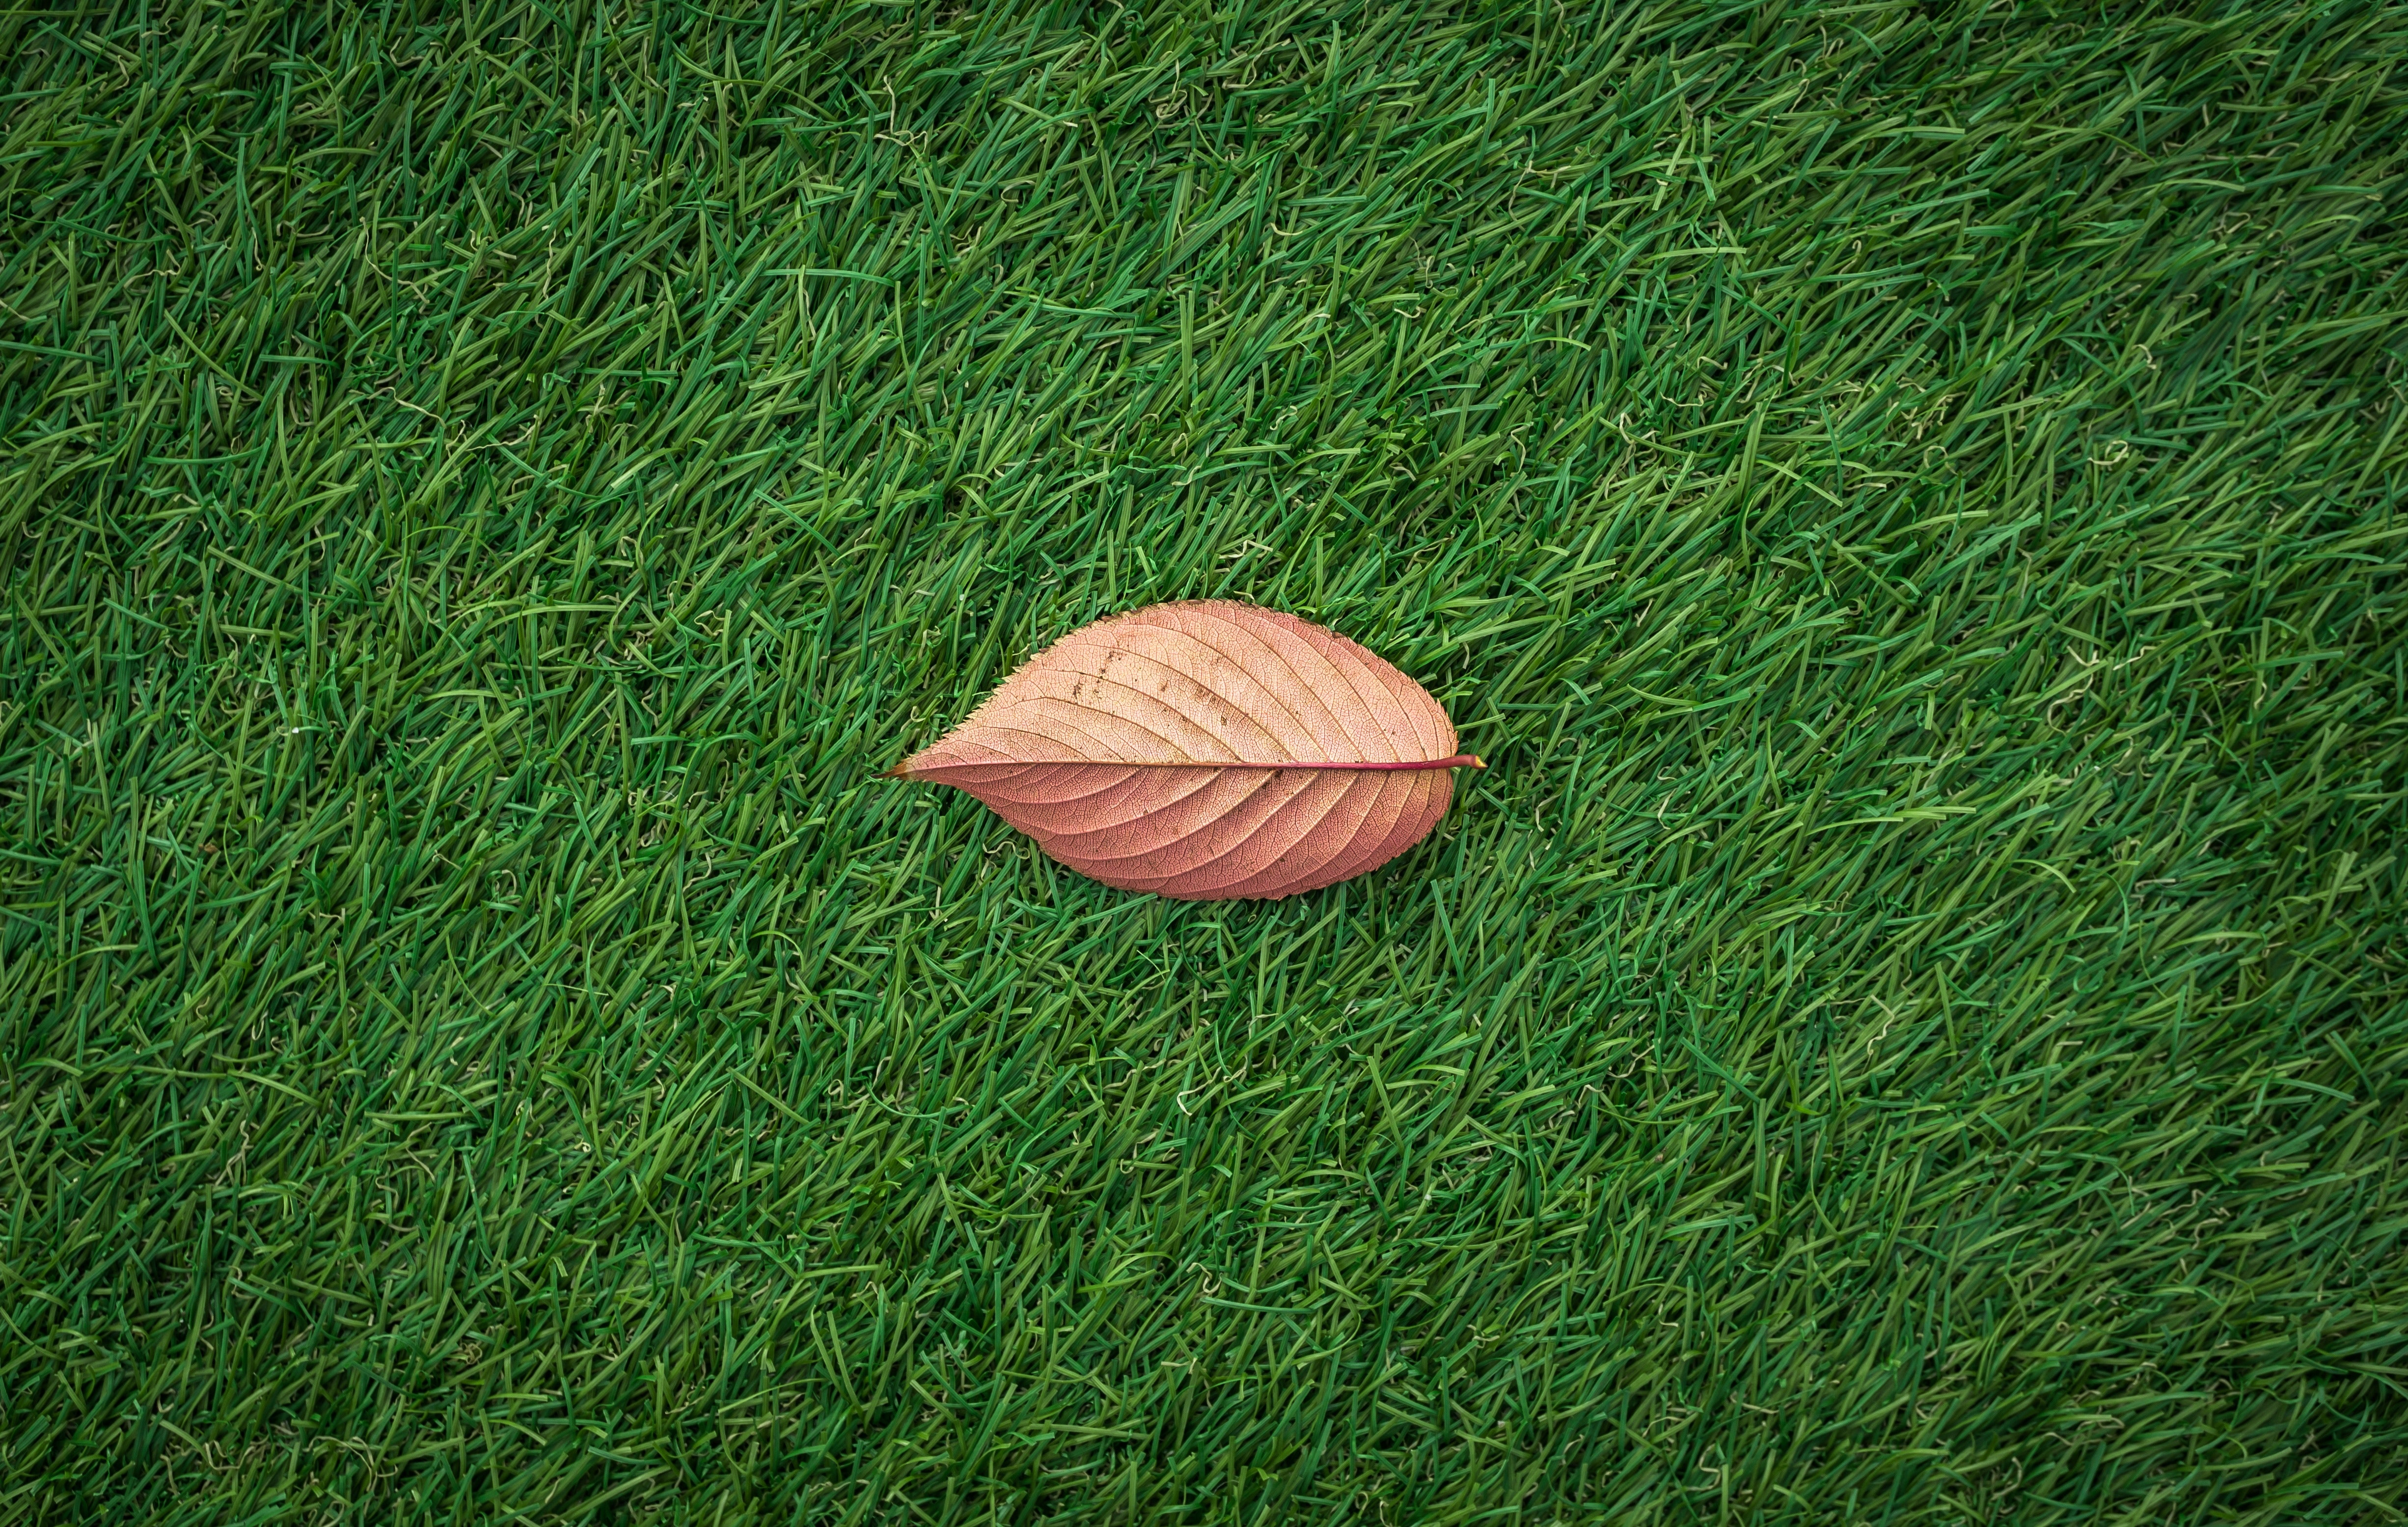 One autumn leaf on a manicured fall lawn care